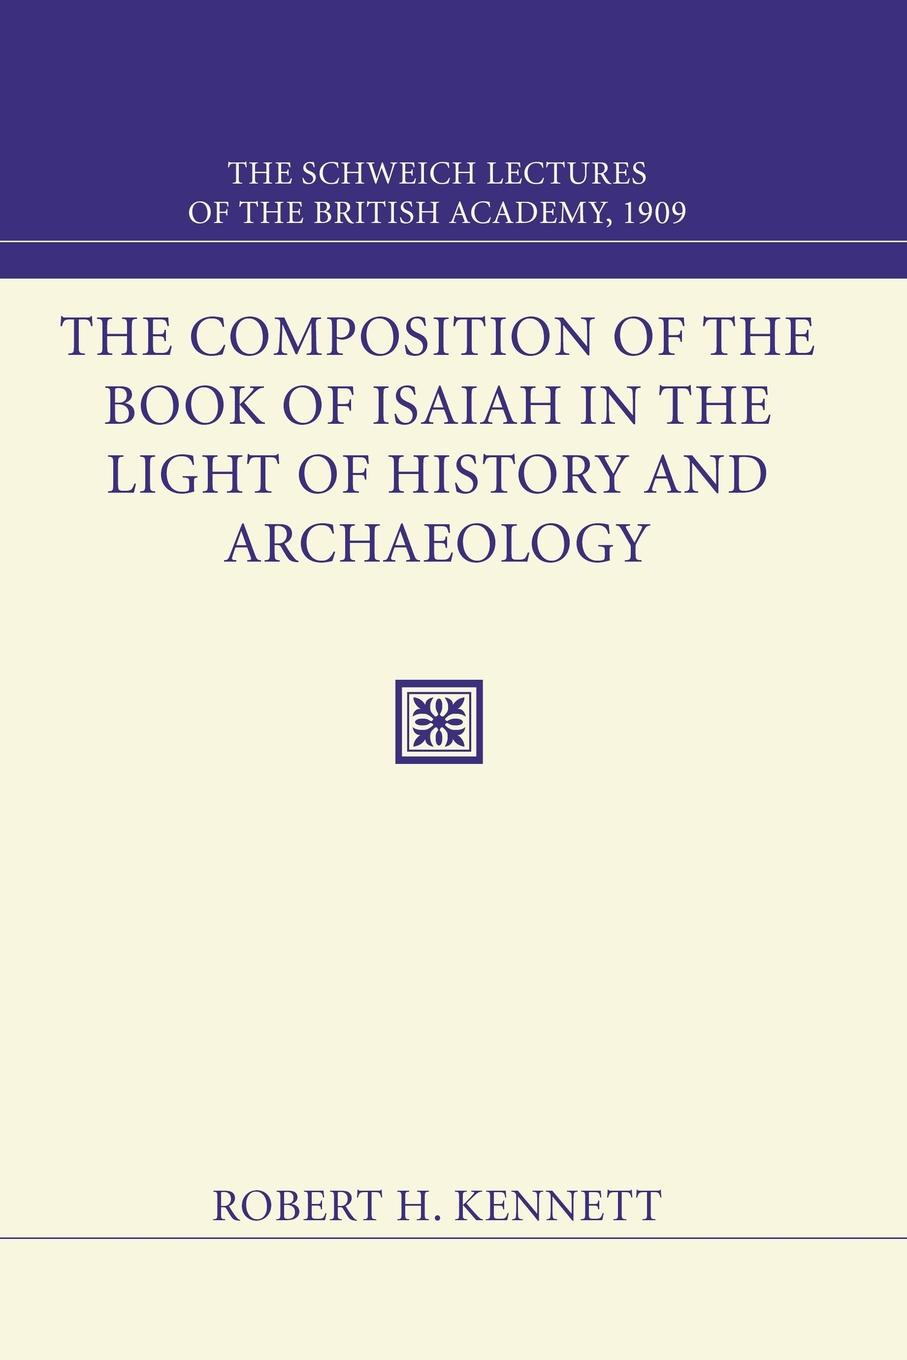 Robert H. Kennett Composition of the Book of Isaiah in the Light of History and Archaeology. The Schweich Lectures 1909 isaiah trunk robert moses shapiro lodz ghetto a history